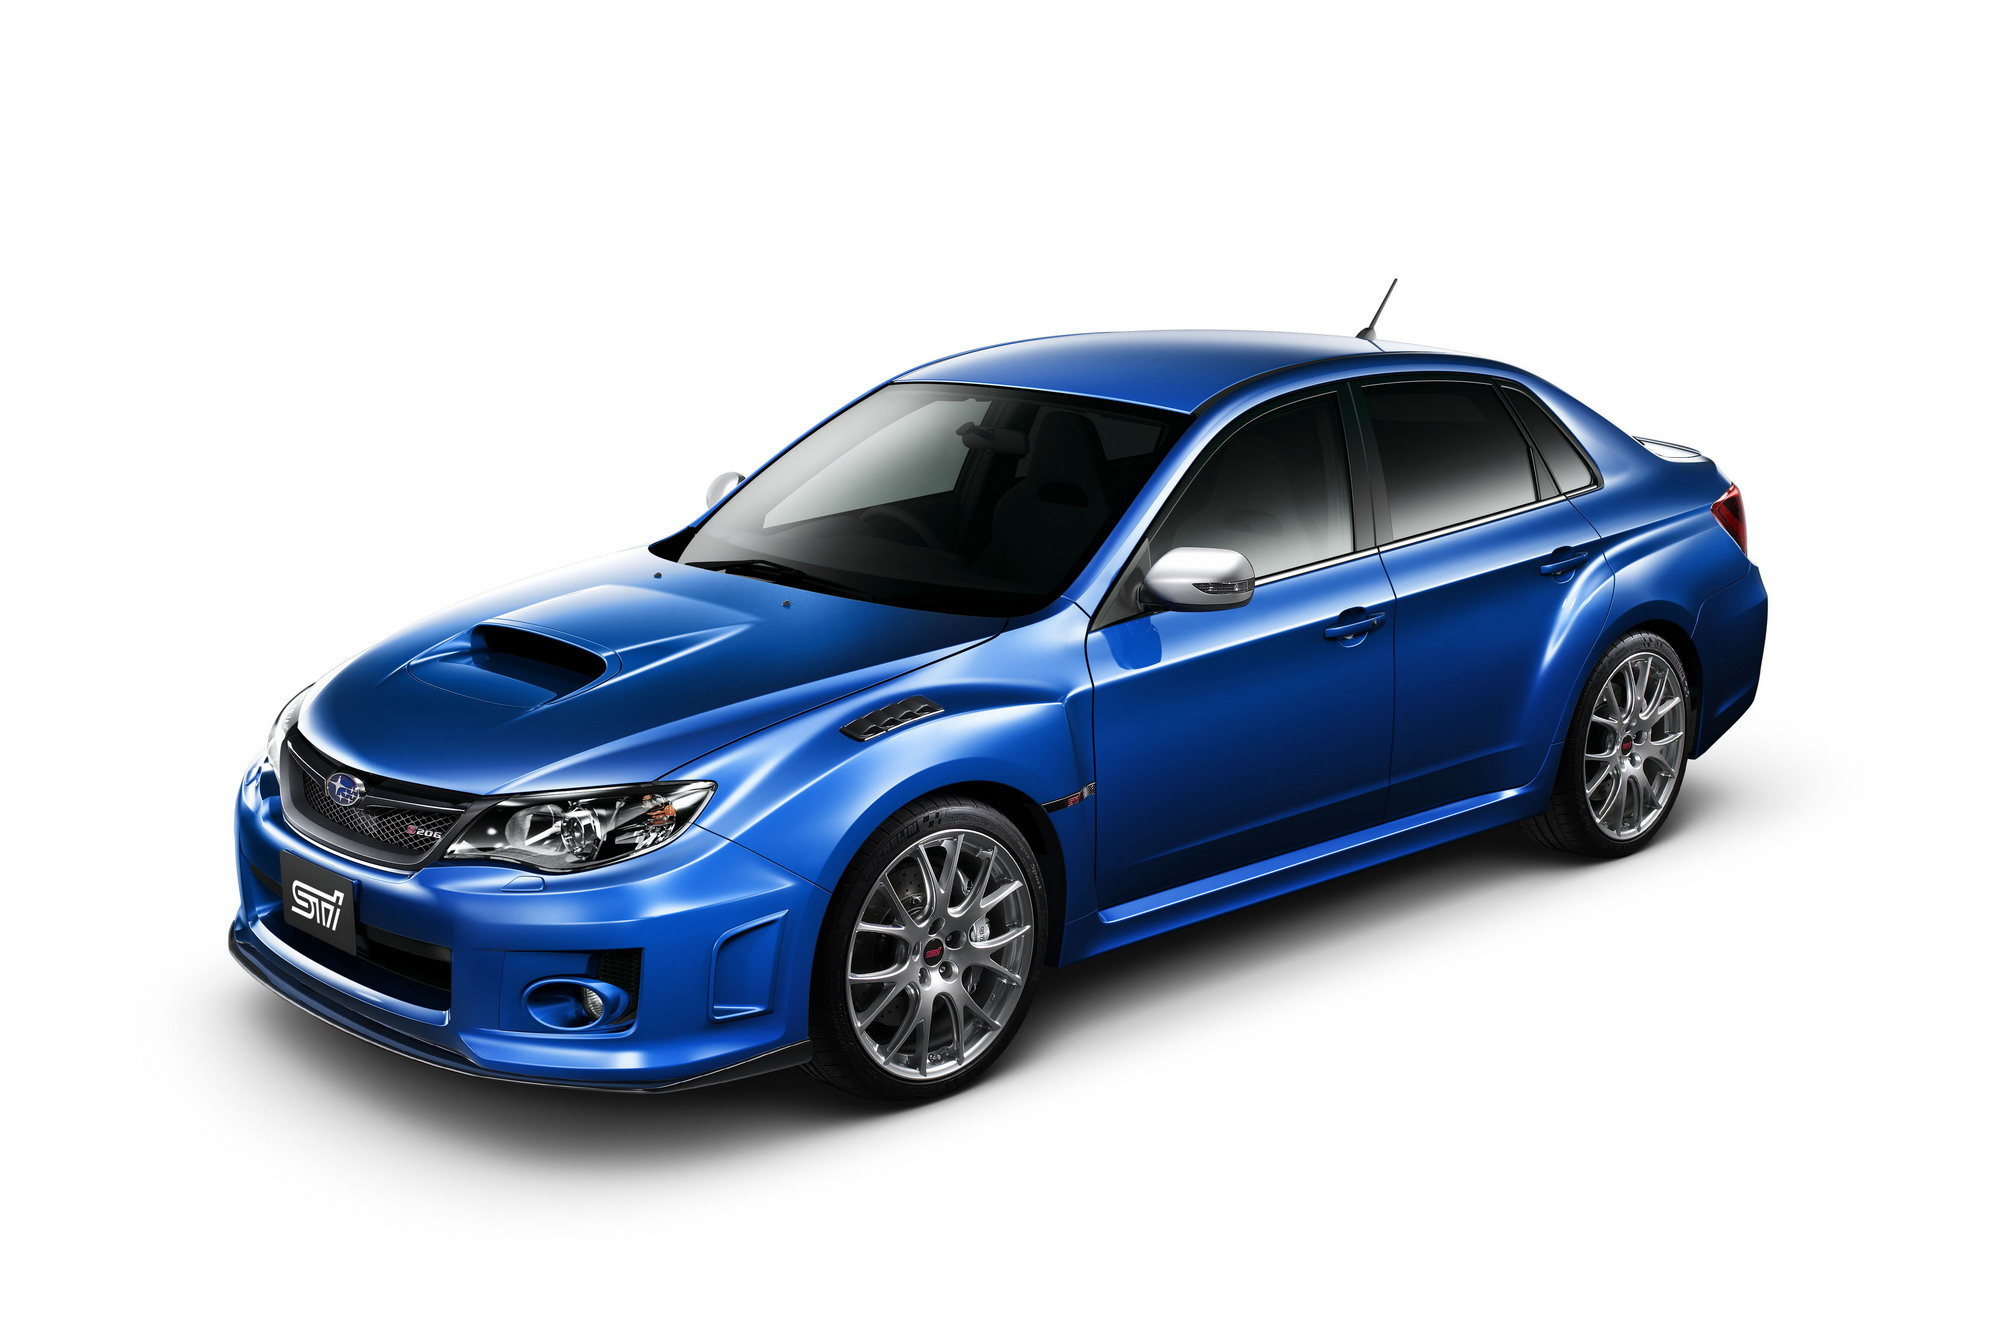 2012 subaru impreza wrx sti s206 review - gallery - top speed